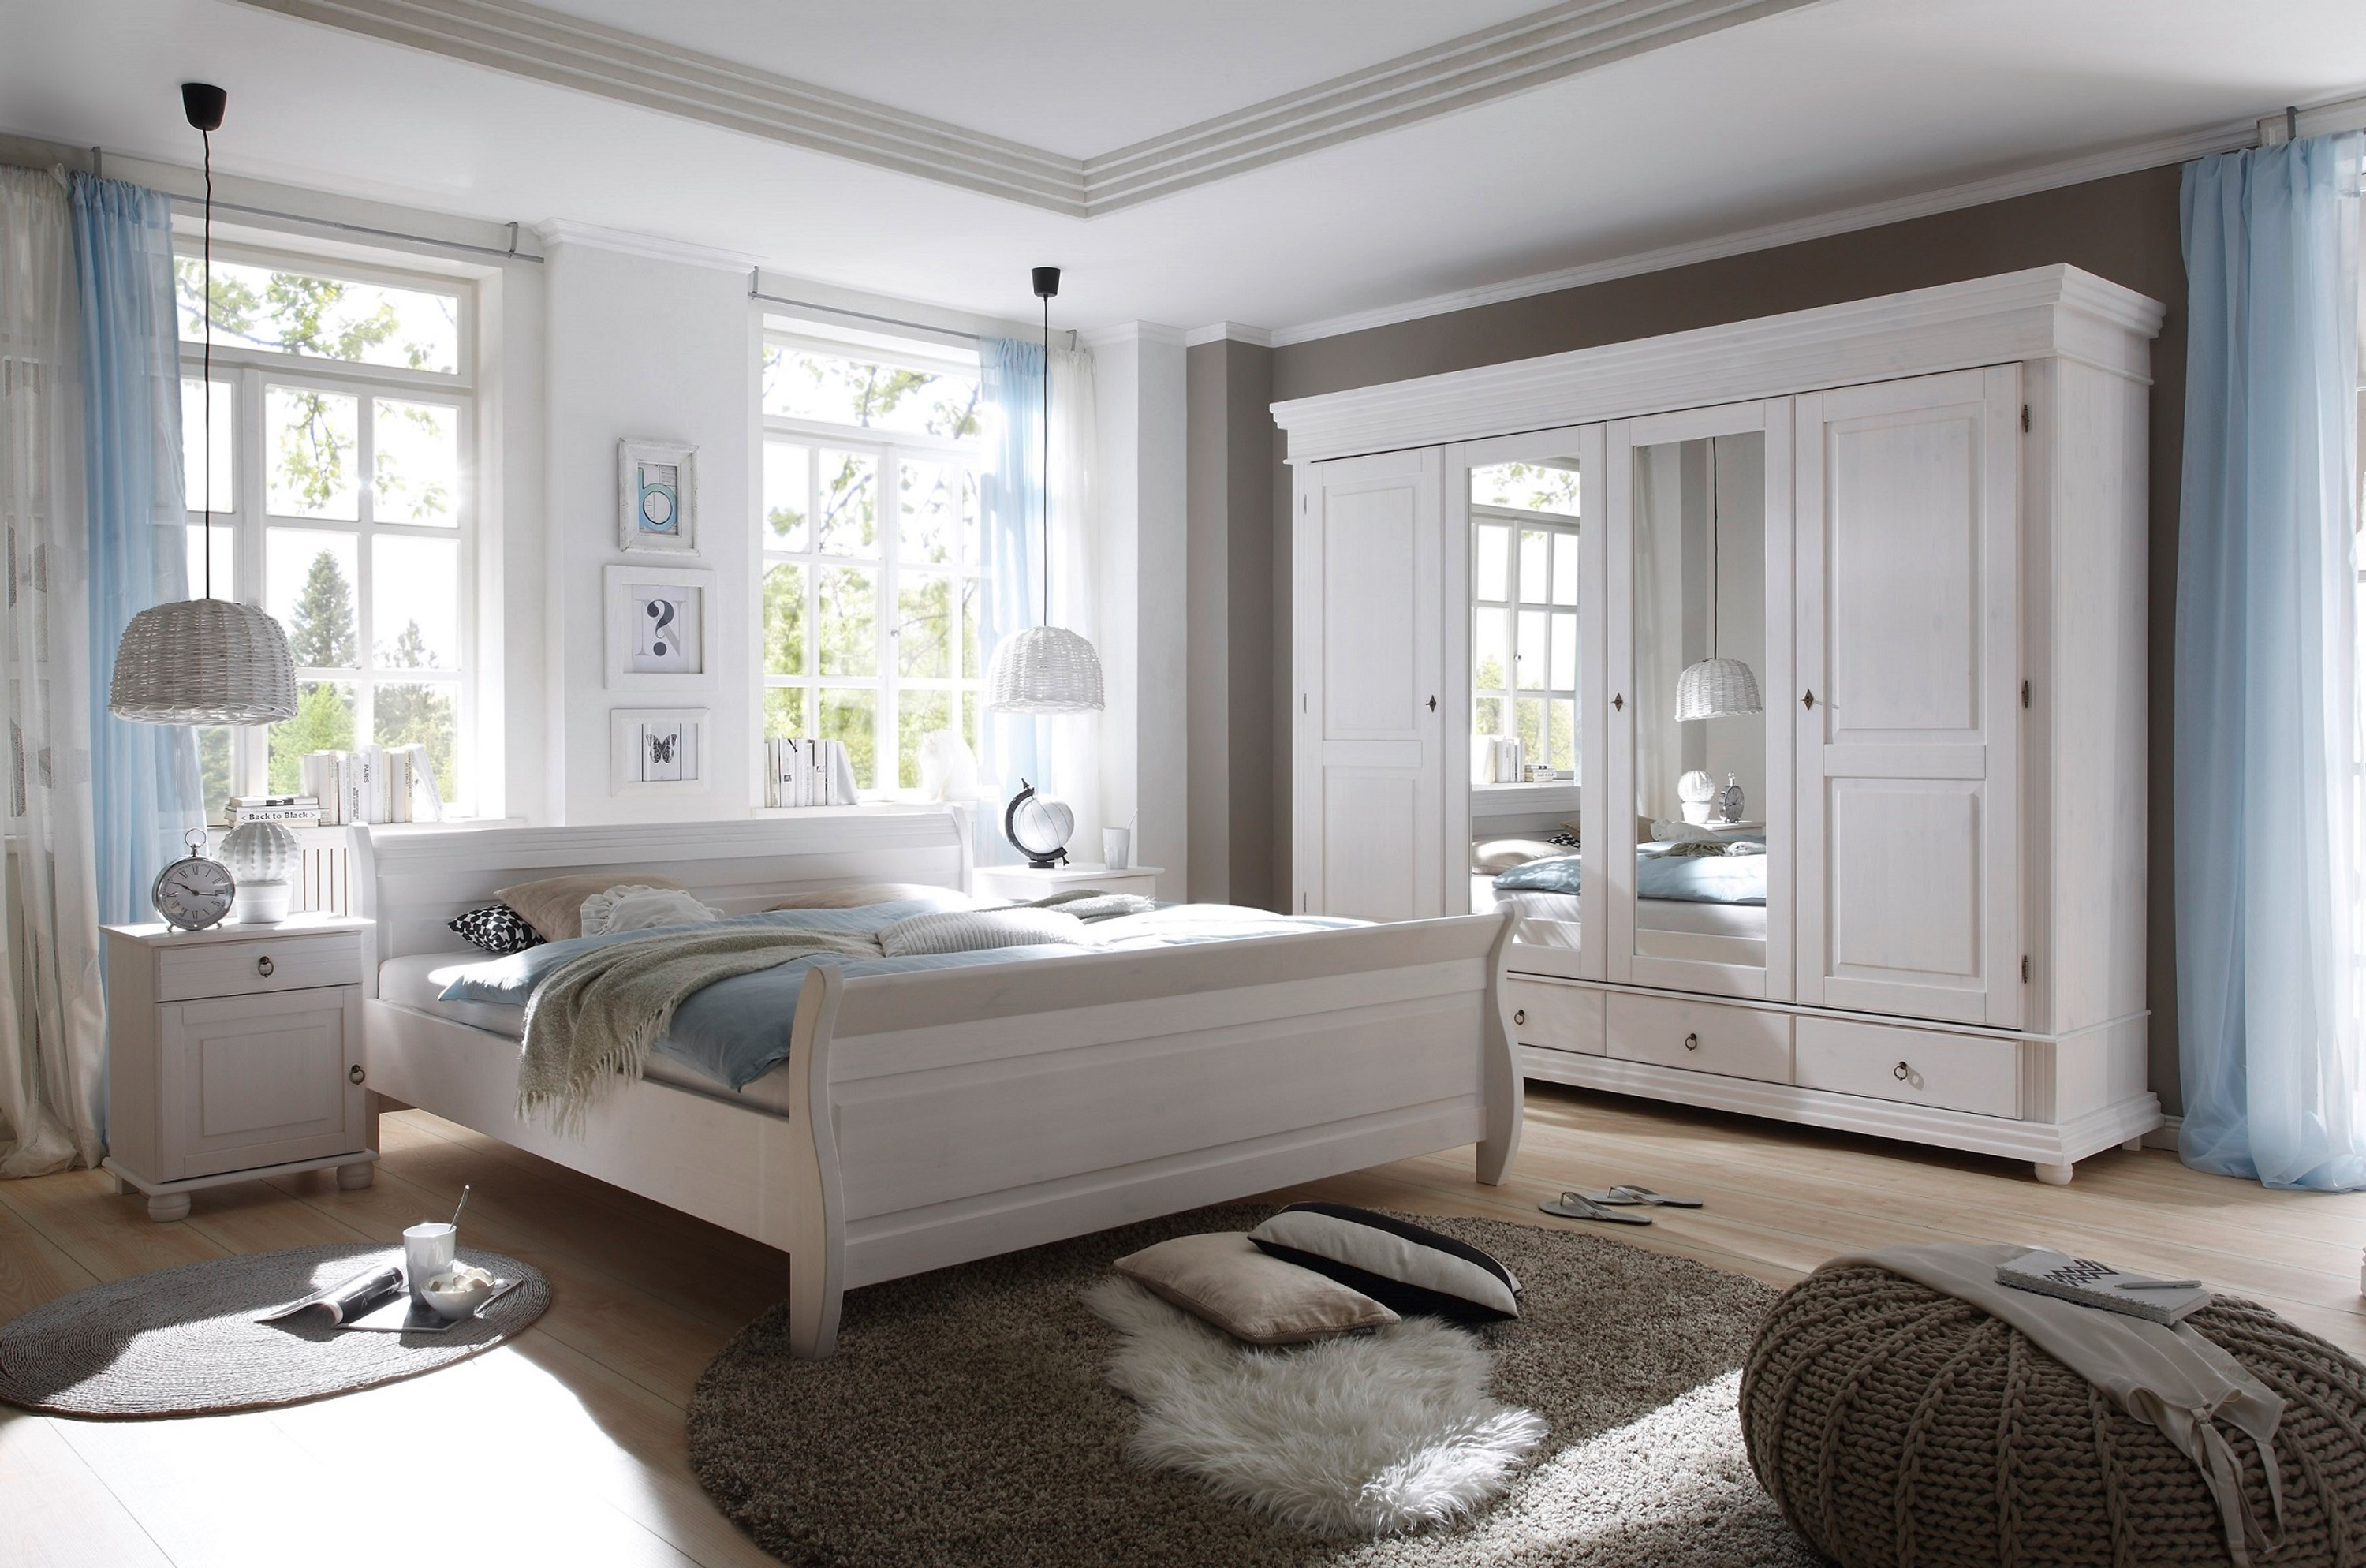 schlafzimmer oslo 4 tlg in kiefer massiv wei gewachst m bel schlafzimmer schlafzimmersets. Black Bedroom Furniture Sets. Home Design Ideas